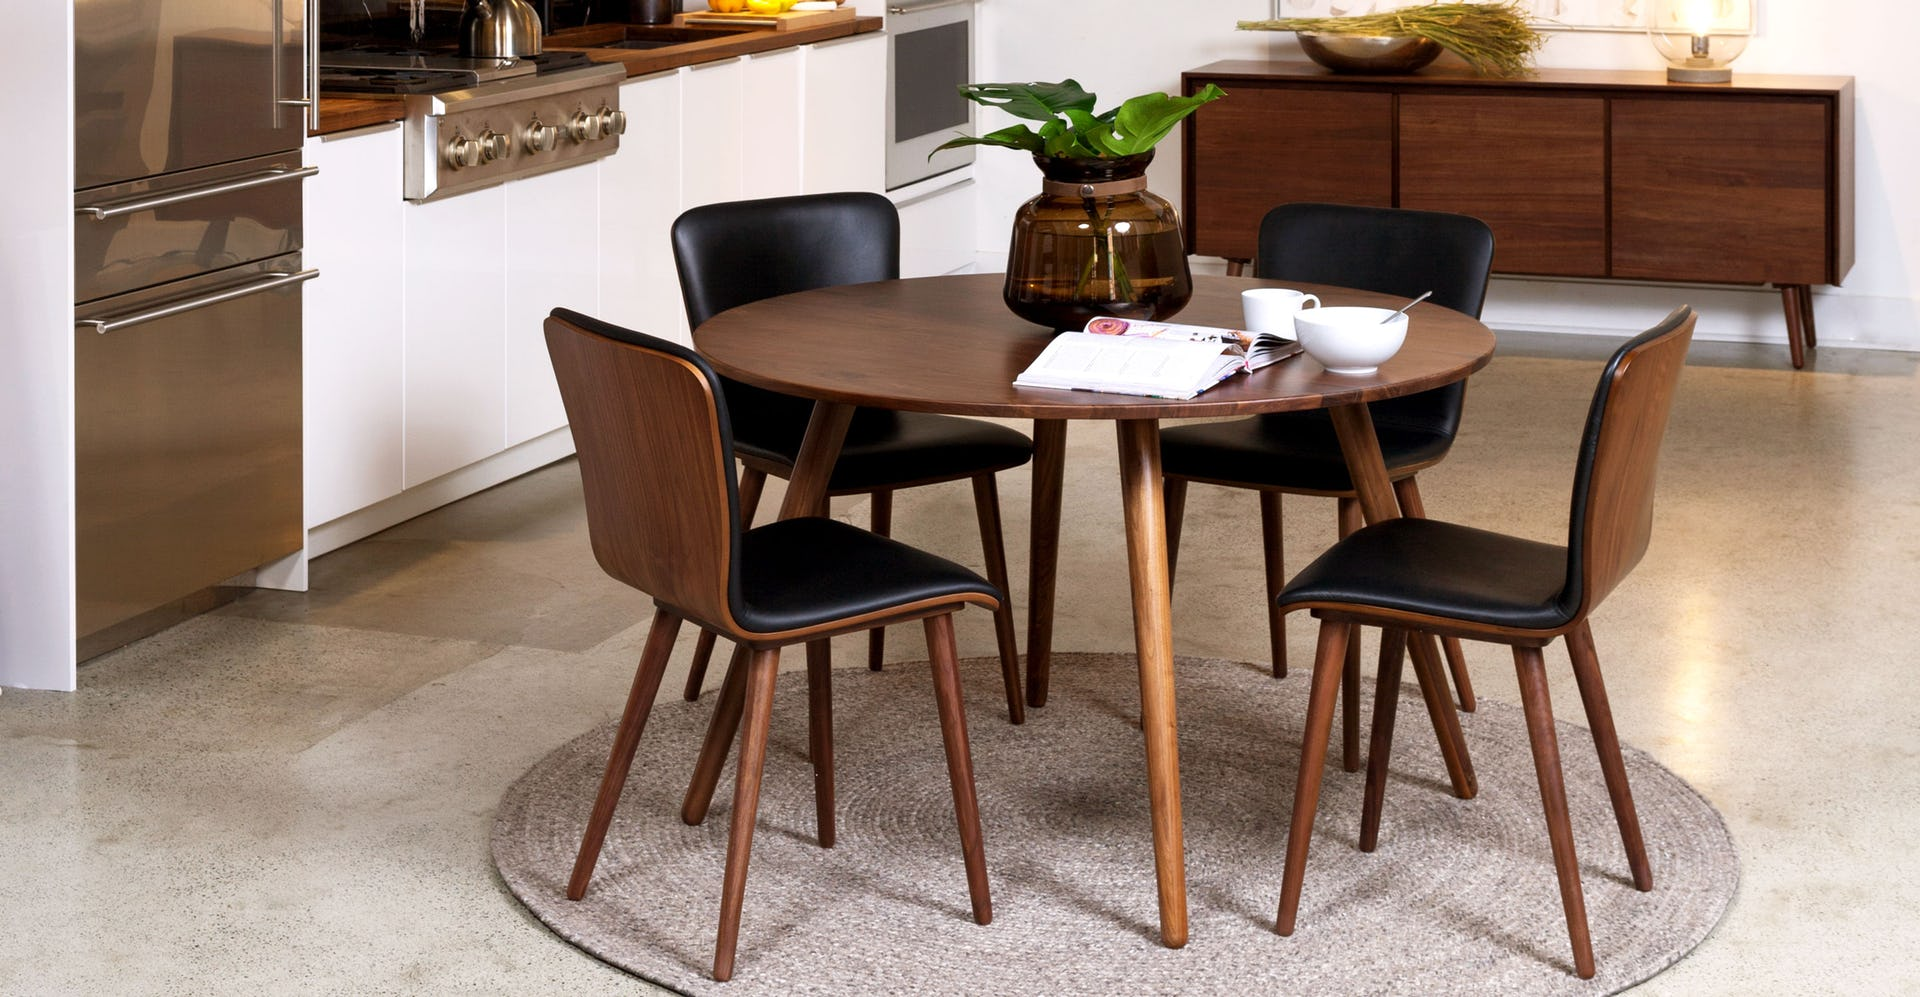 Sede Black Leather Walnut Dining Chair, set of 2